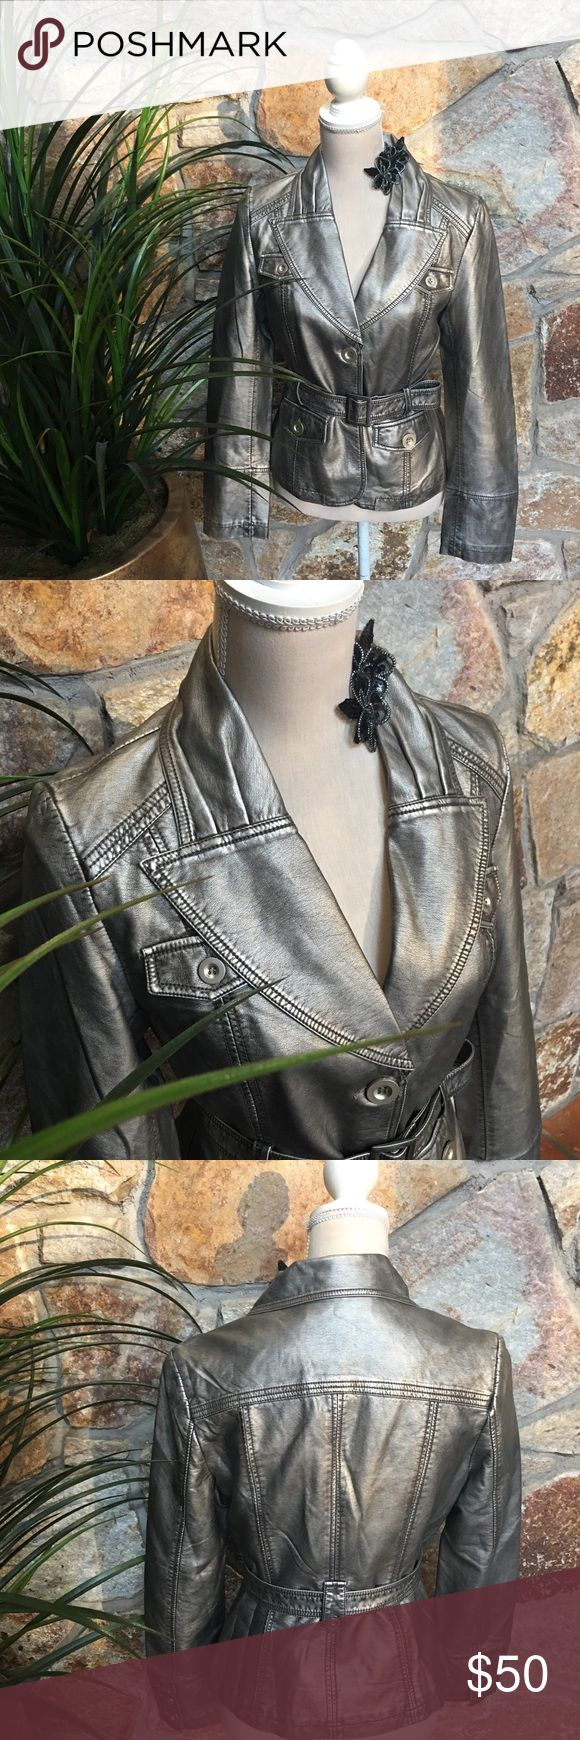 "Gitano Pewter faux leather belted jacket Perfect condition , Gitano pewter faux leather belted jacket , 60% PU , 40% viscose, 2 front pockets , fully lined , buttons details on sleeves , size S , approx 15.5"" shoulder to shoulder laying flat , 19"" pit to pit , length 22.5"", sleeves approx 24.5 "", waist 15"" laying flat, belt length approx 41 "" Gitano Jackets & Coats"